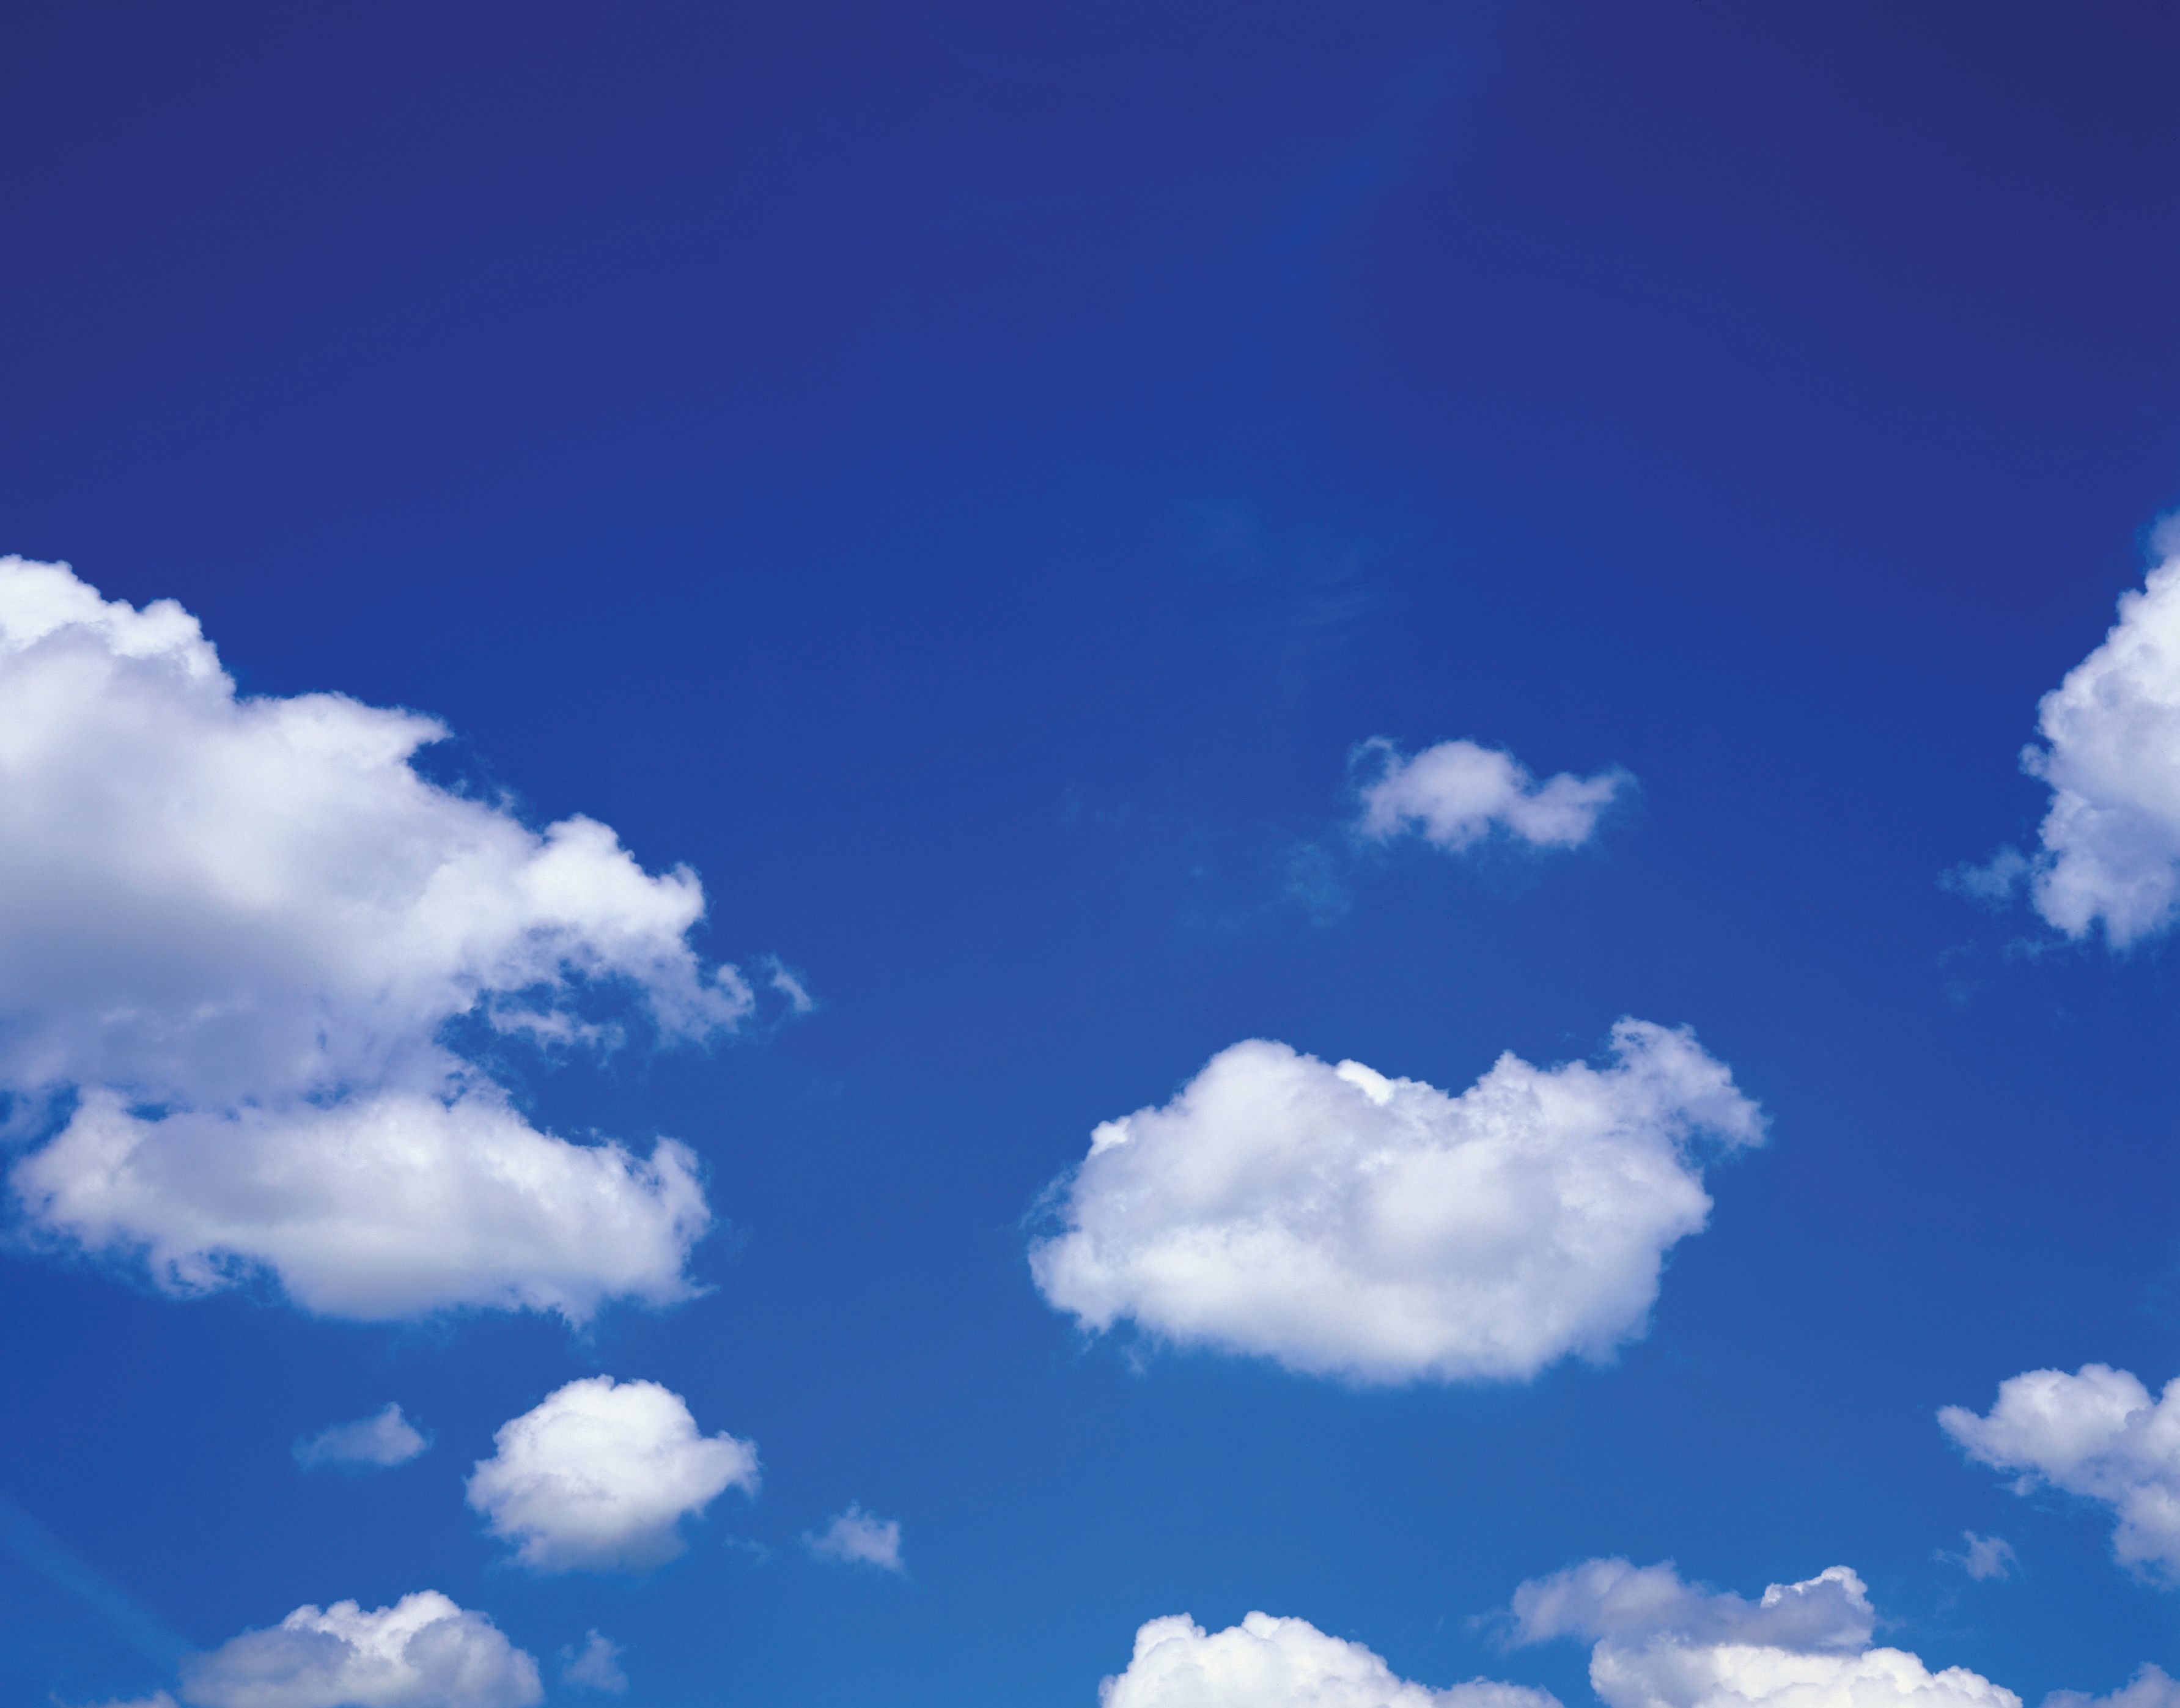 blue sky clouds high resolution - Google Search | Blue Sky Airport ...